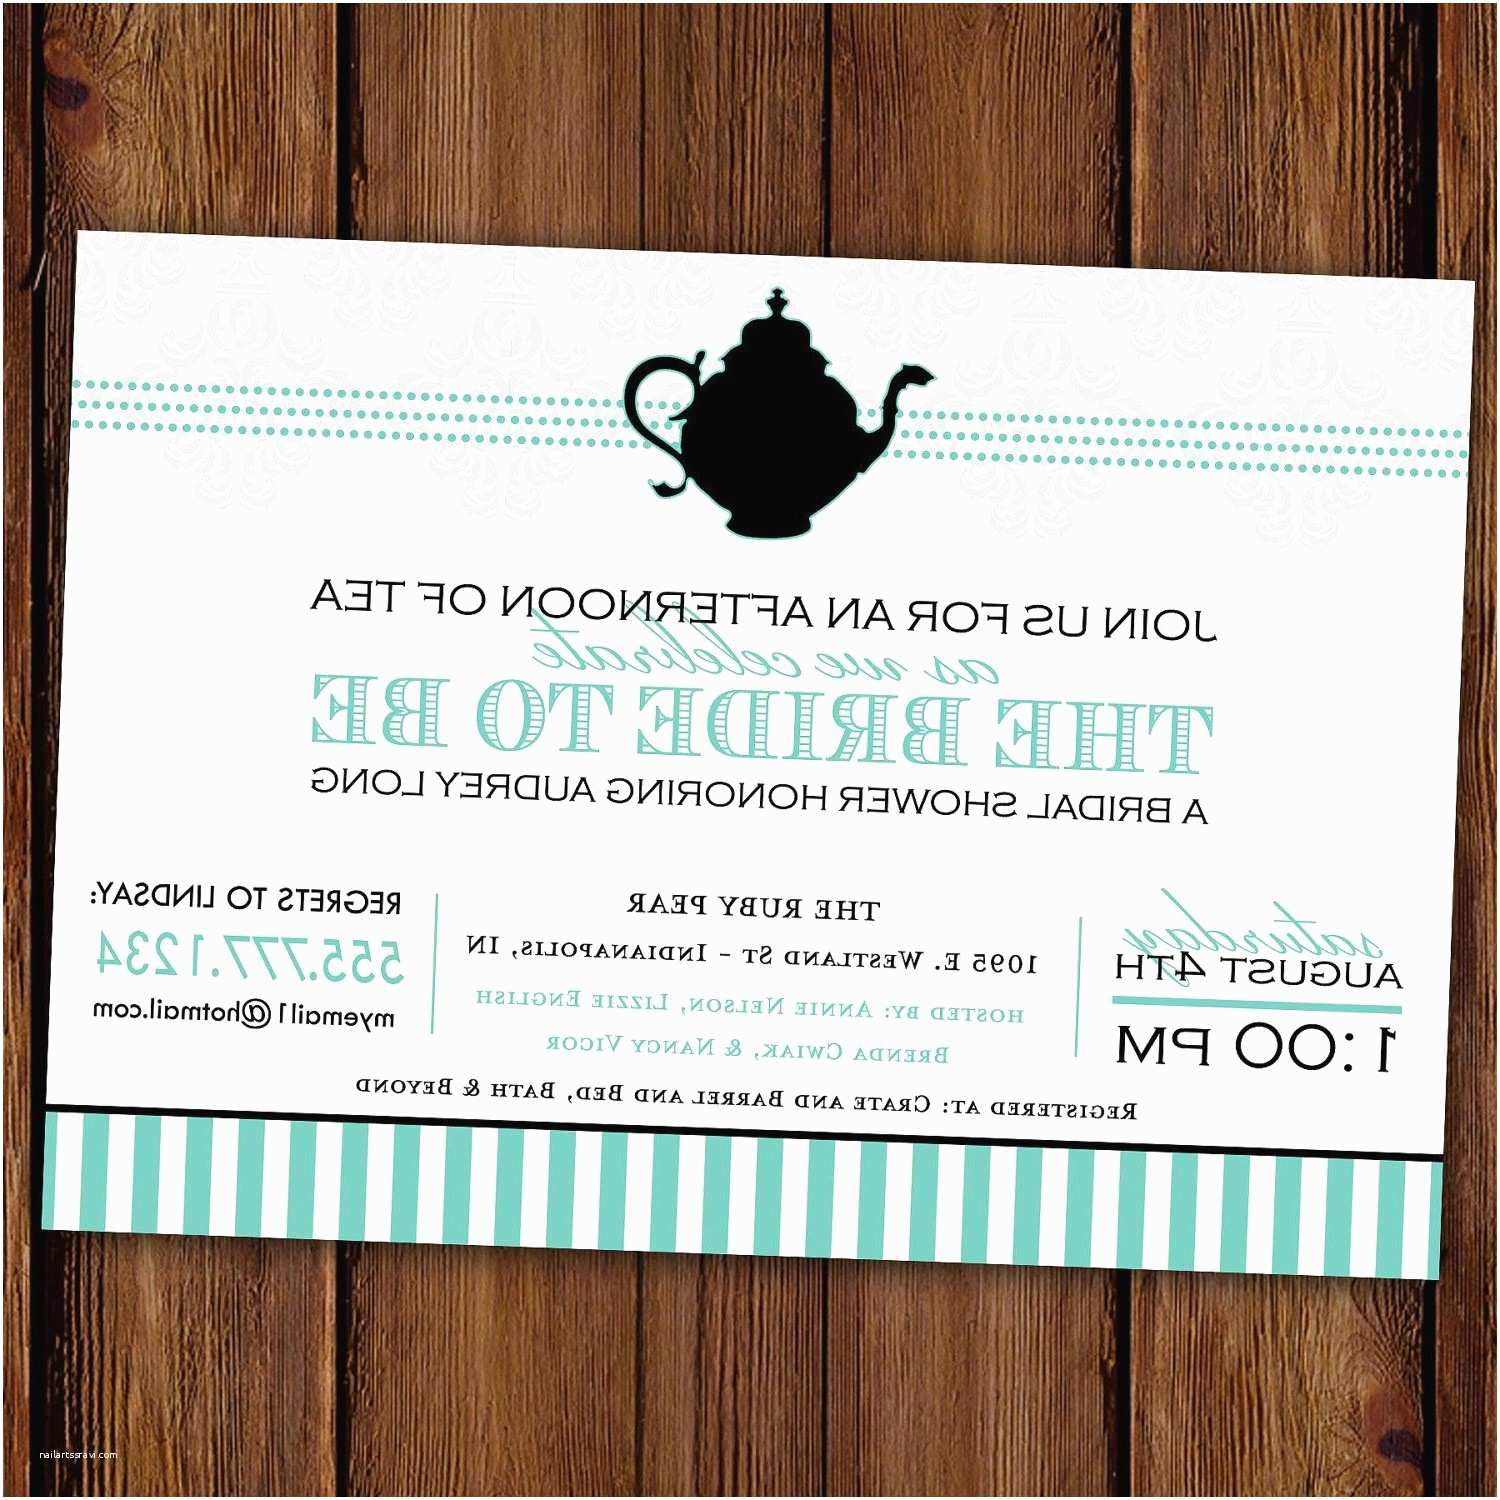 Reception Invites after Destination Wedding Reception Invitation Wording after Destination Wedding